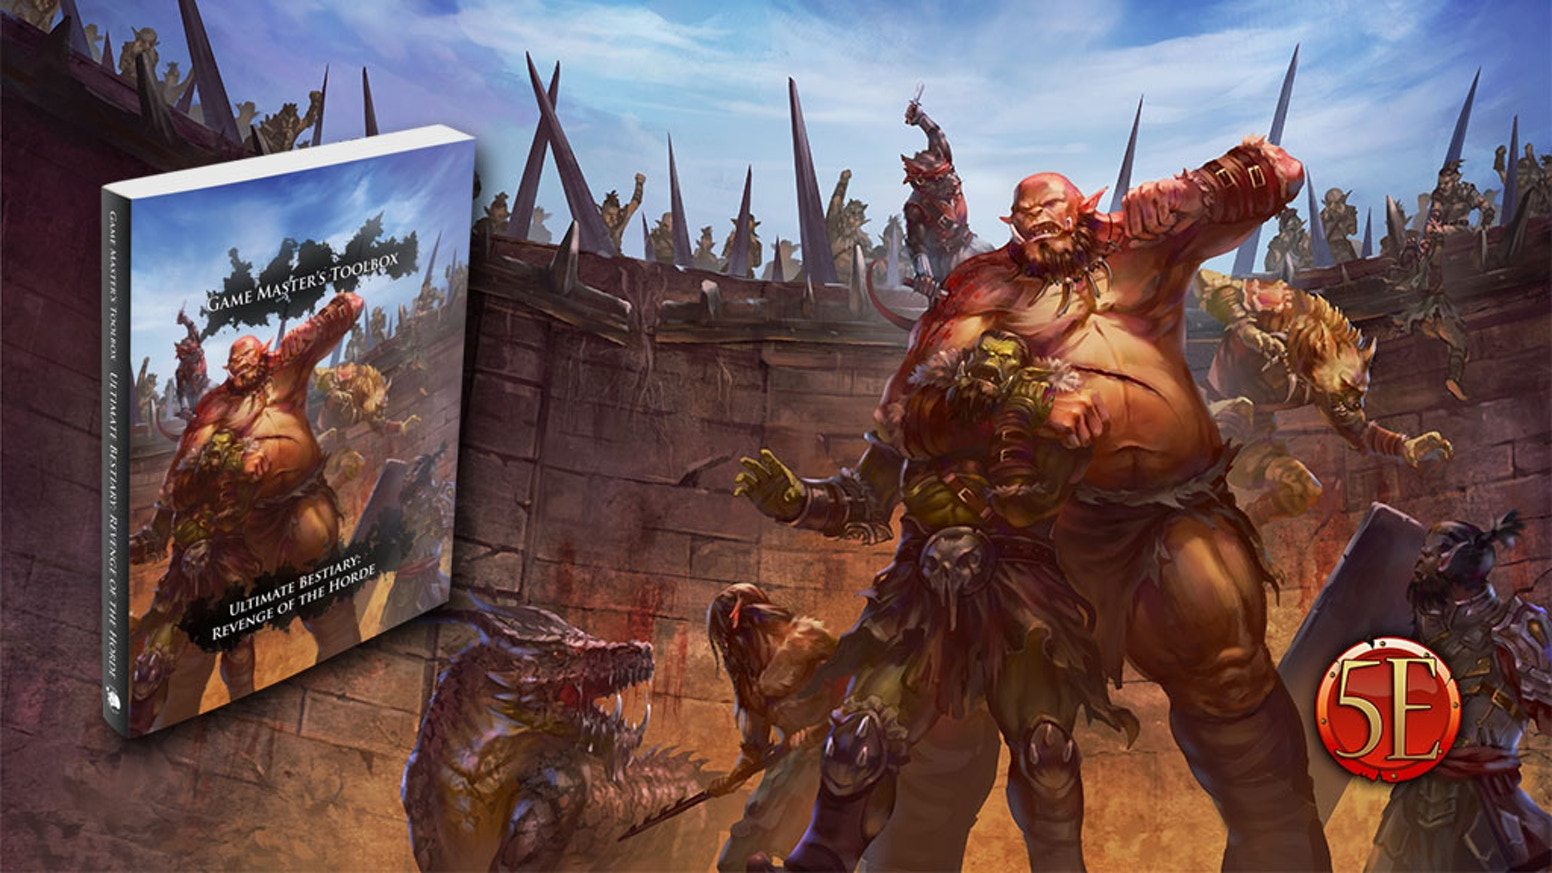 6a4f0eacea91 Ultimate Bestiary  Revenge of the Horde! New 5E Monsters! by Nord ...